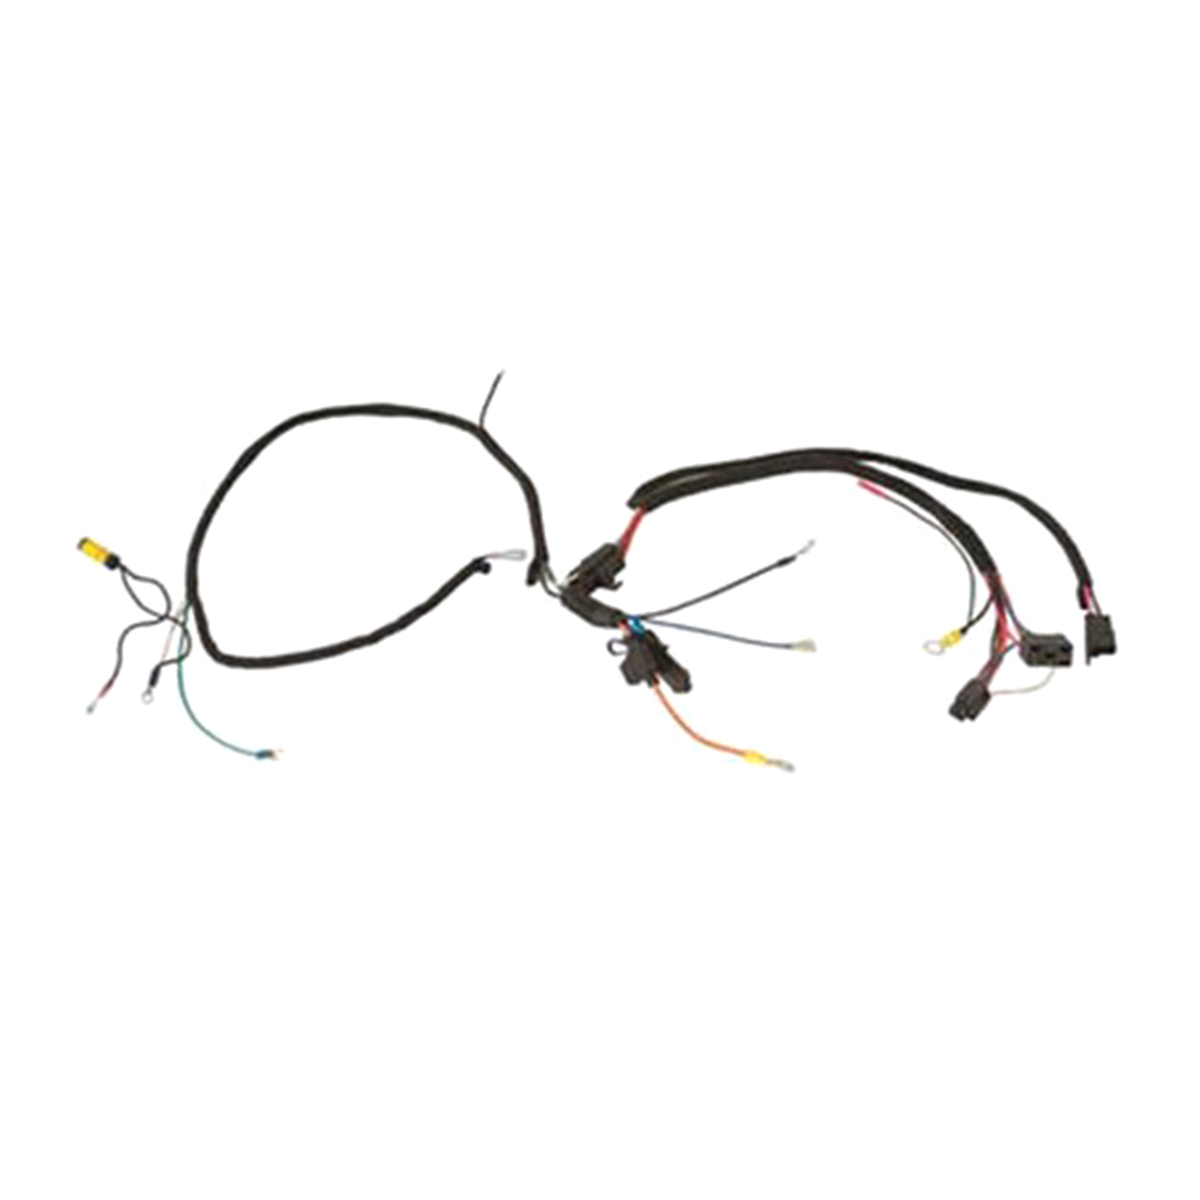 500028 500030 dixie chopper kohler generac wiring harness chopper wiring harness at crackthecode.co